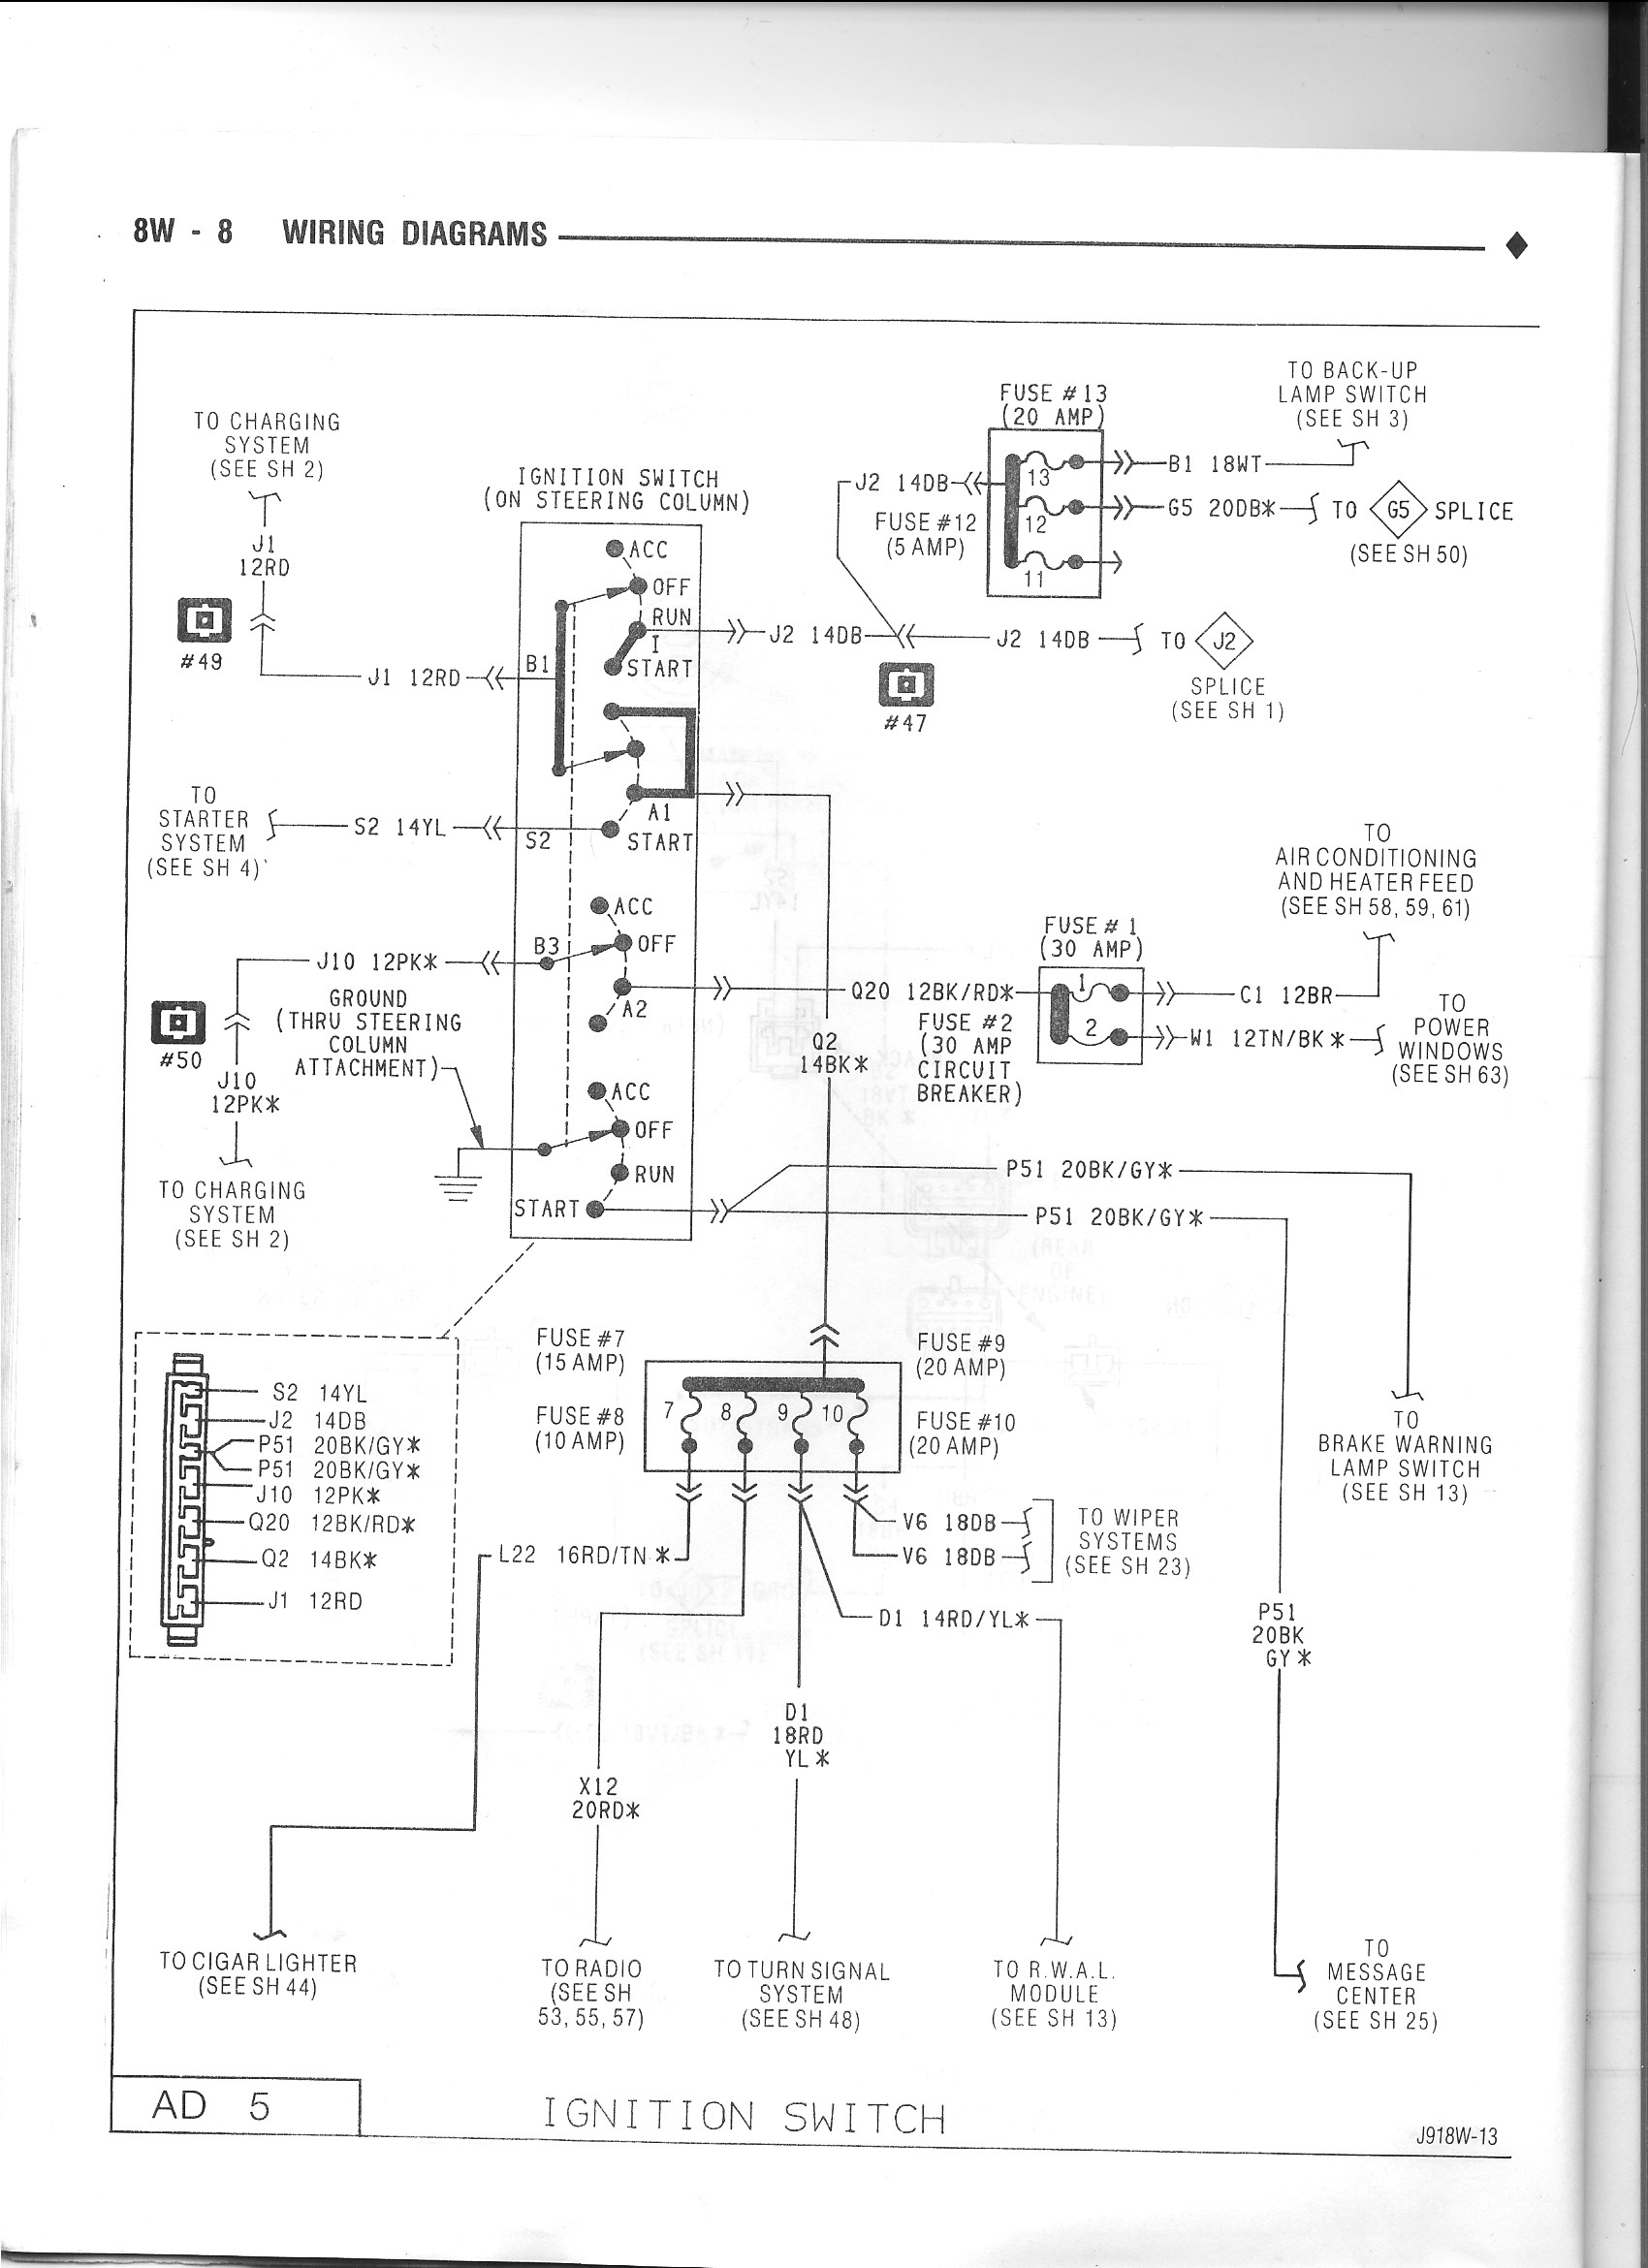 1991 dodge w250 wiring diagram 1987 dodge w250 wiring diagram new to me 1990 w250 - dodge cummins diesel forum